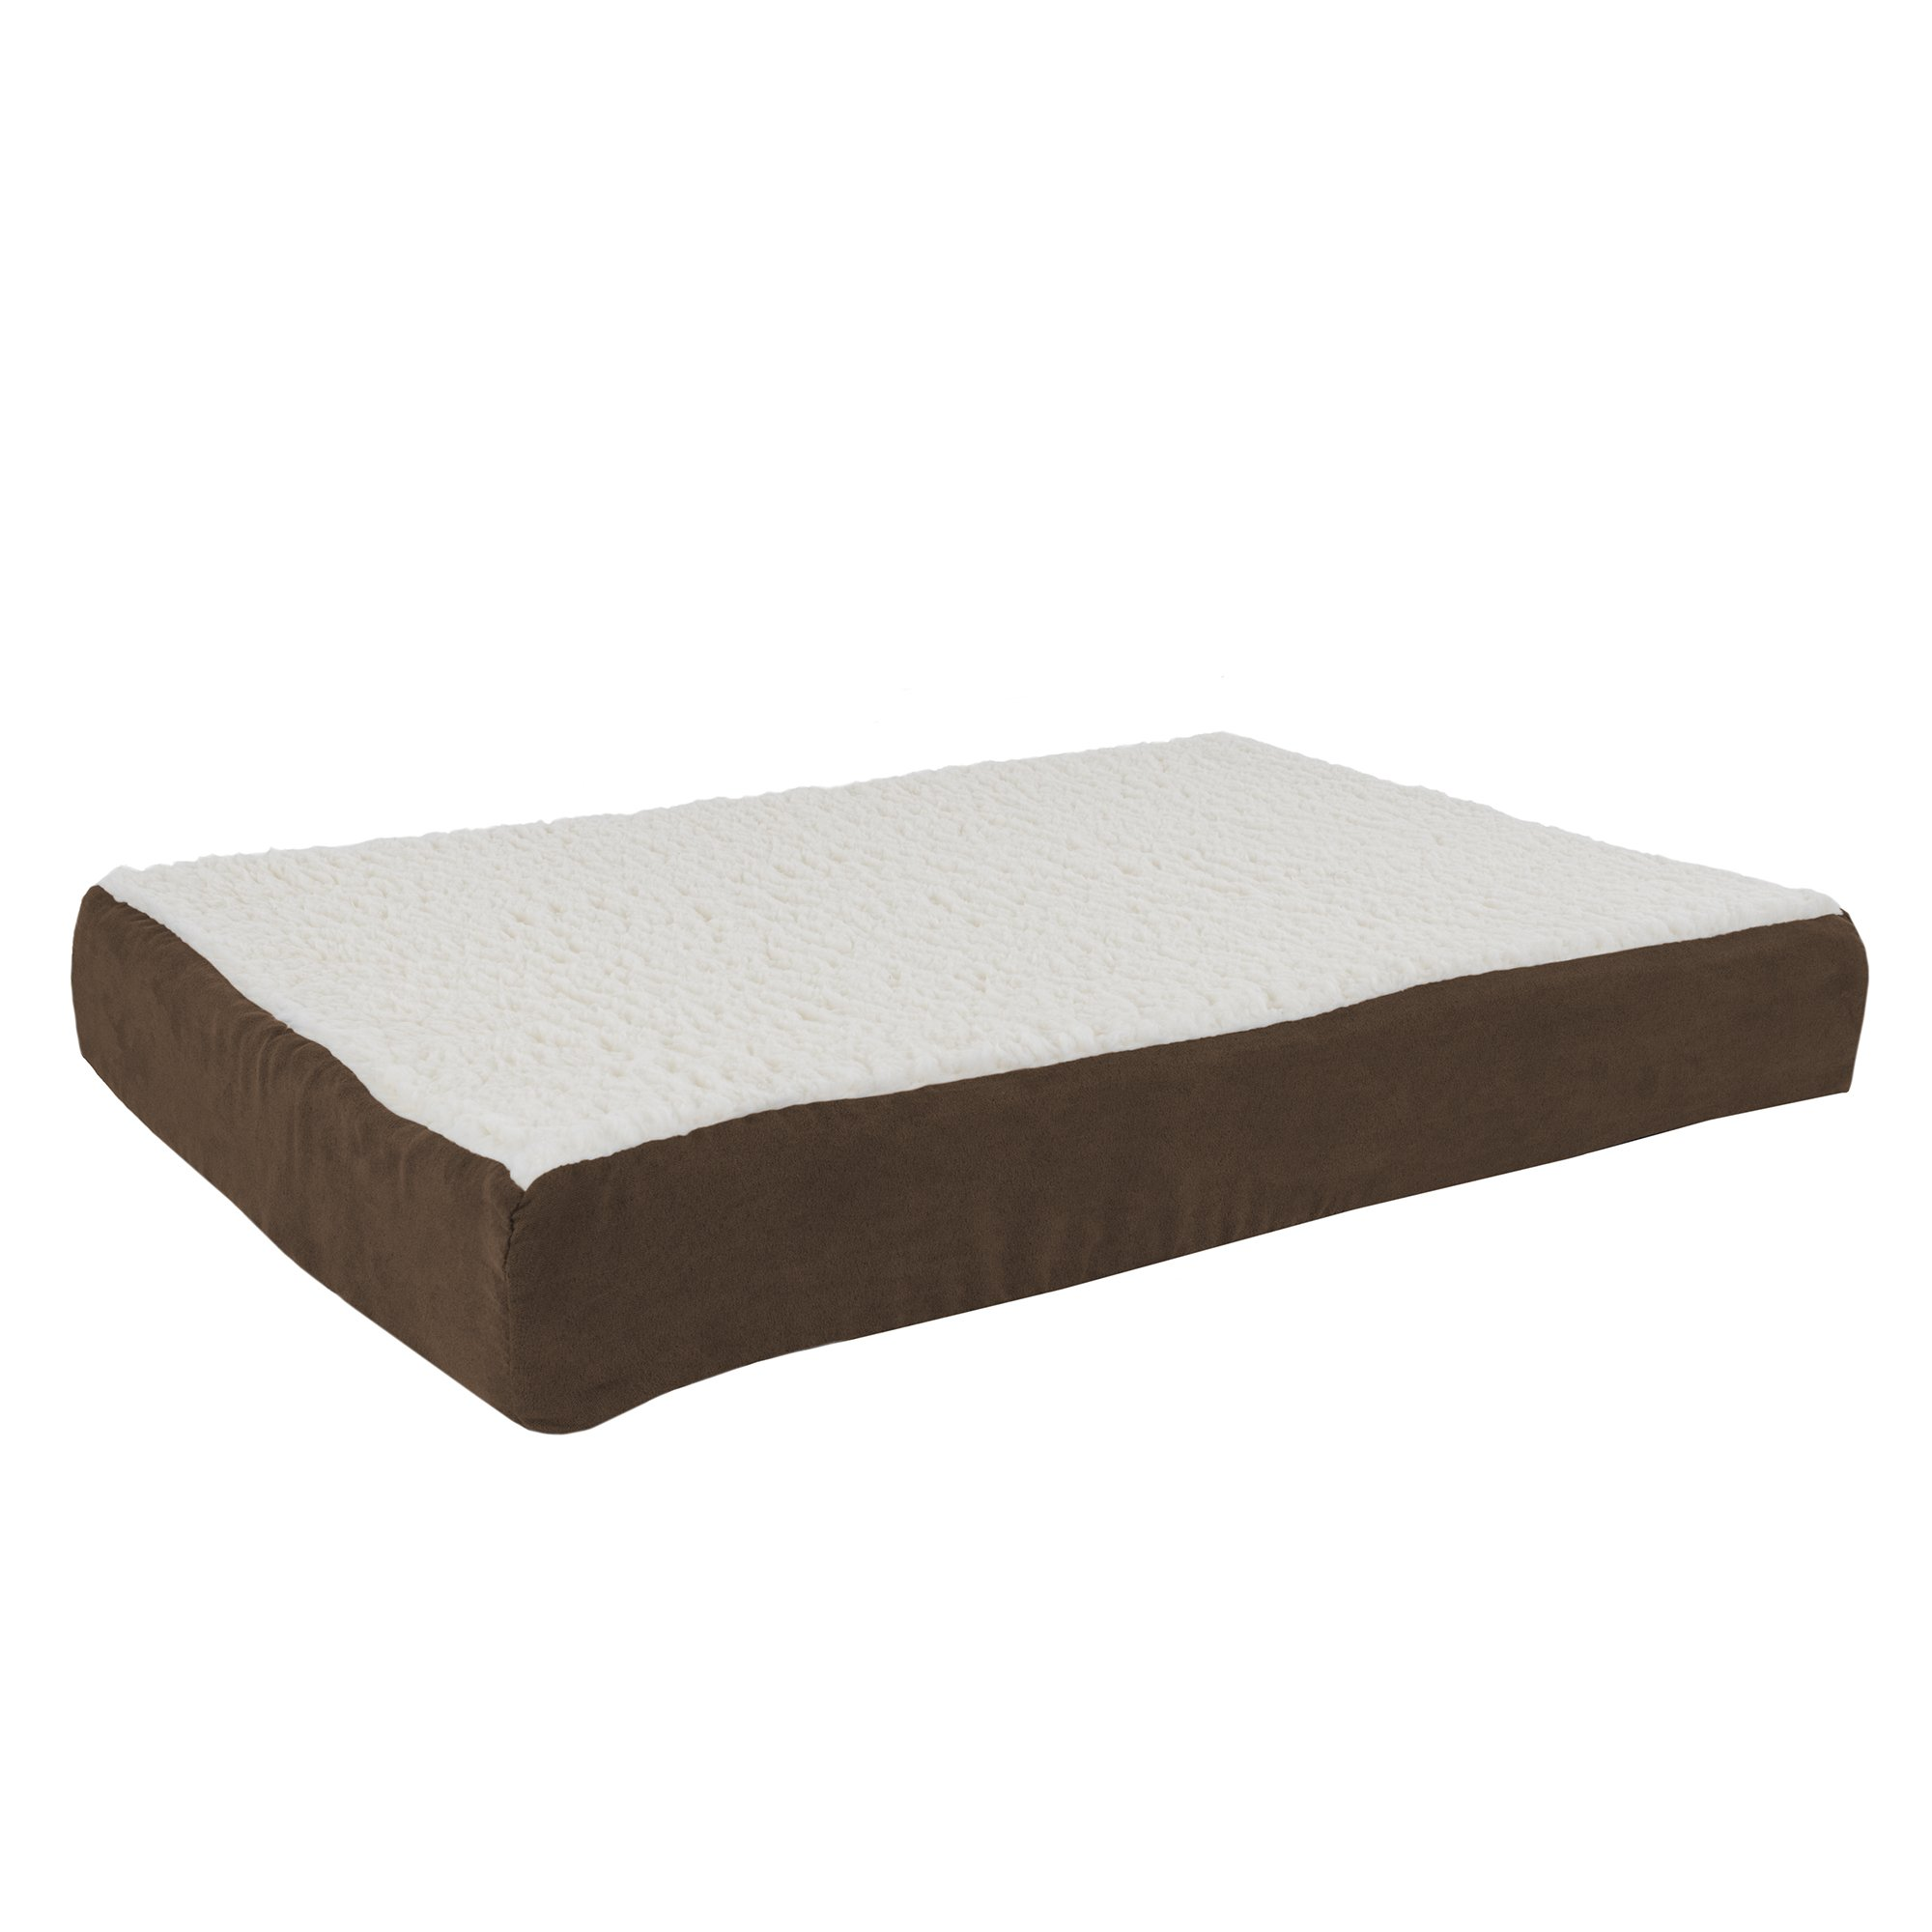 PETMAKER Orthopedic Sherpa Top Pet Bed with Memory Foam and Removable Cover 30x20.5x4 Brown by PETMAKER